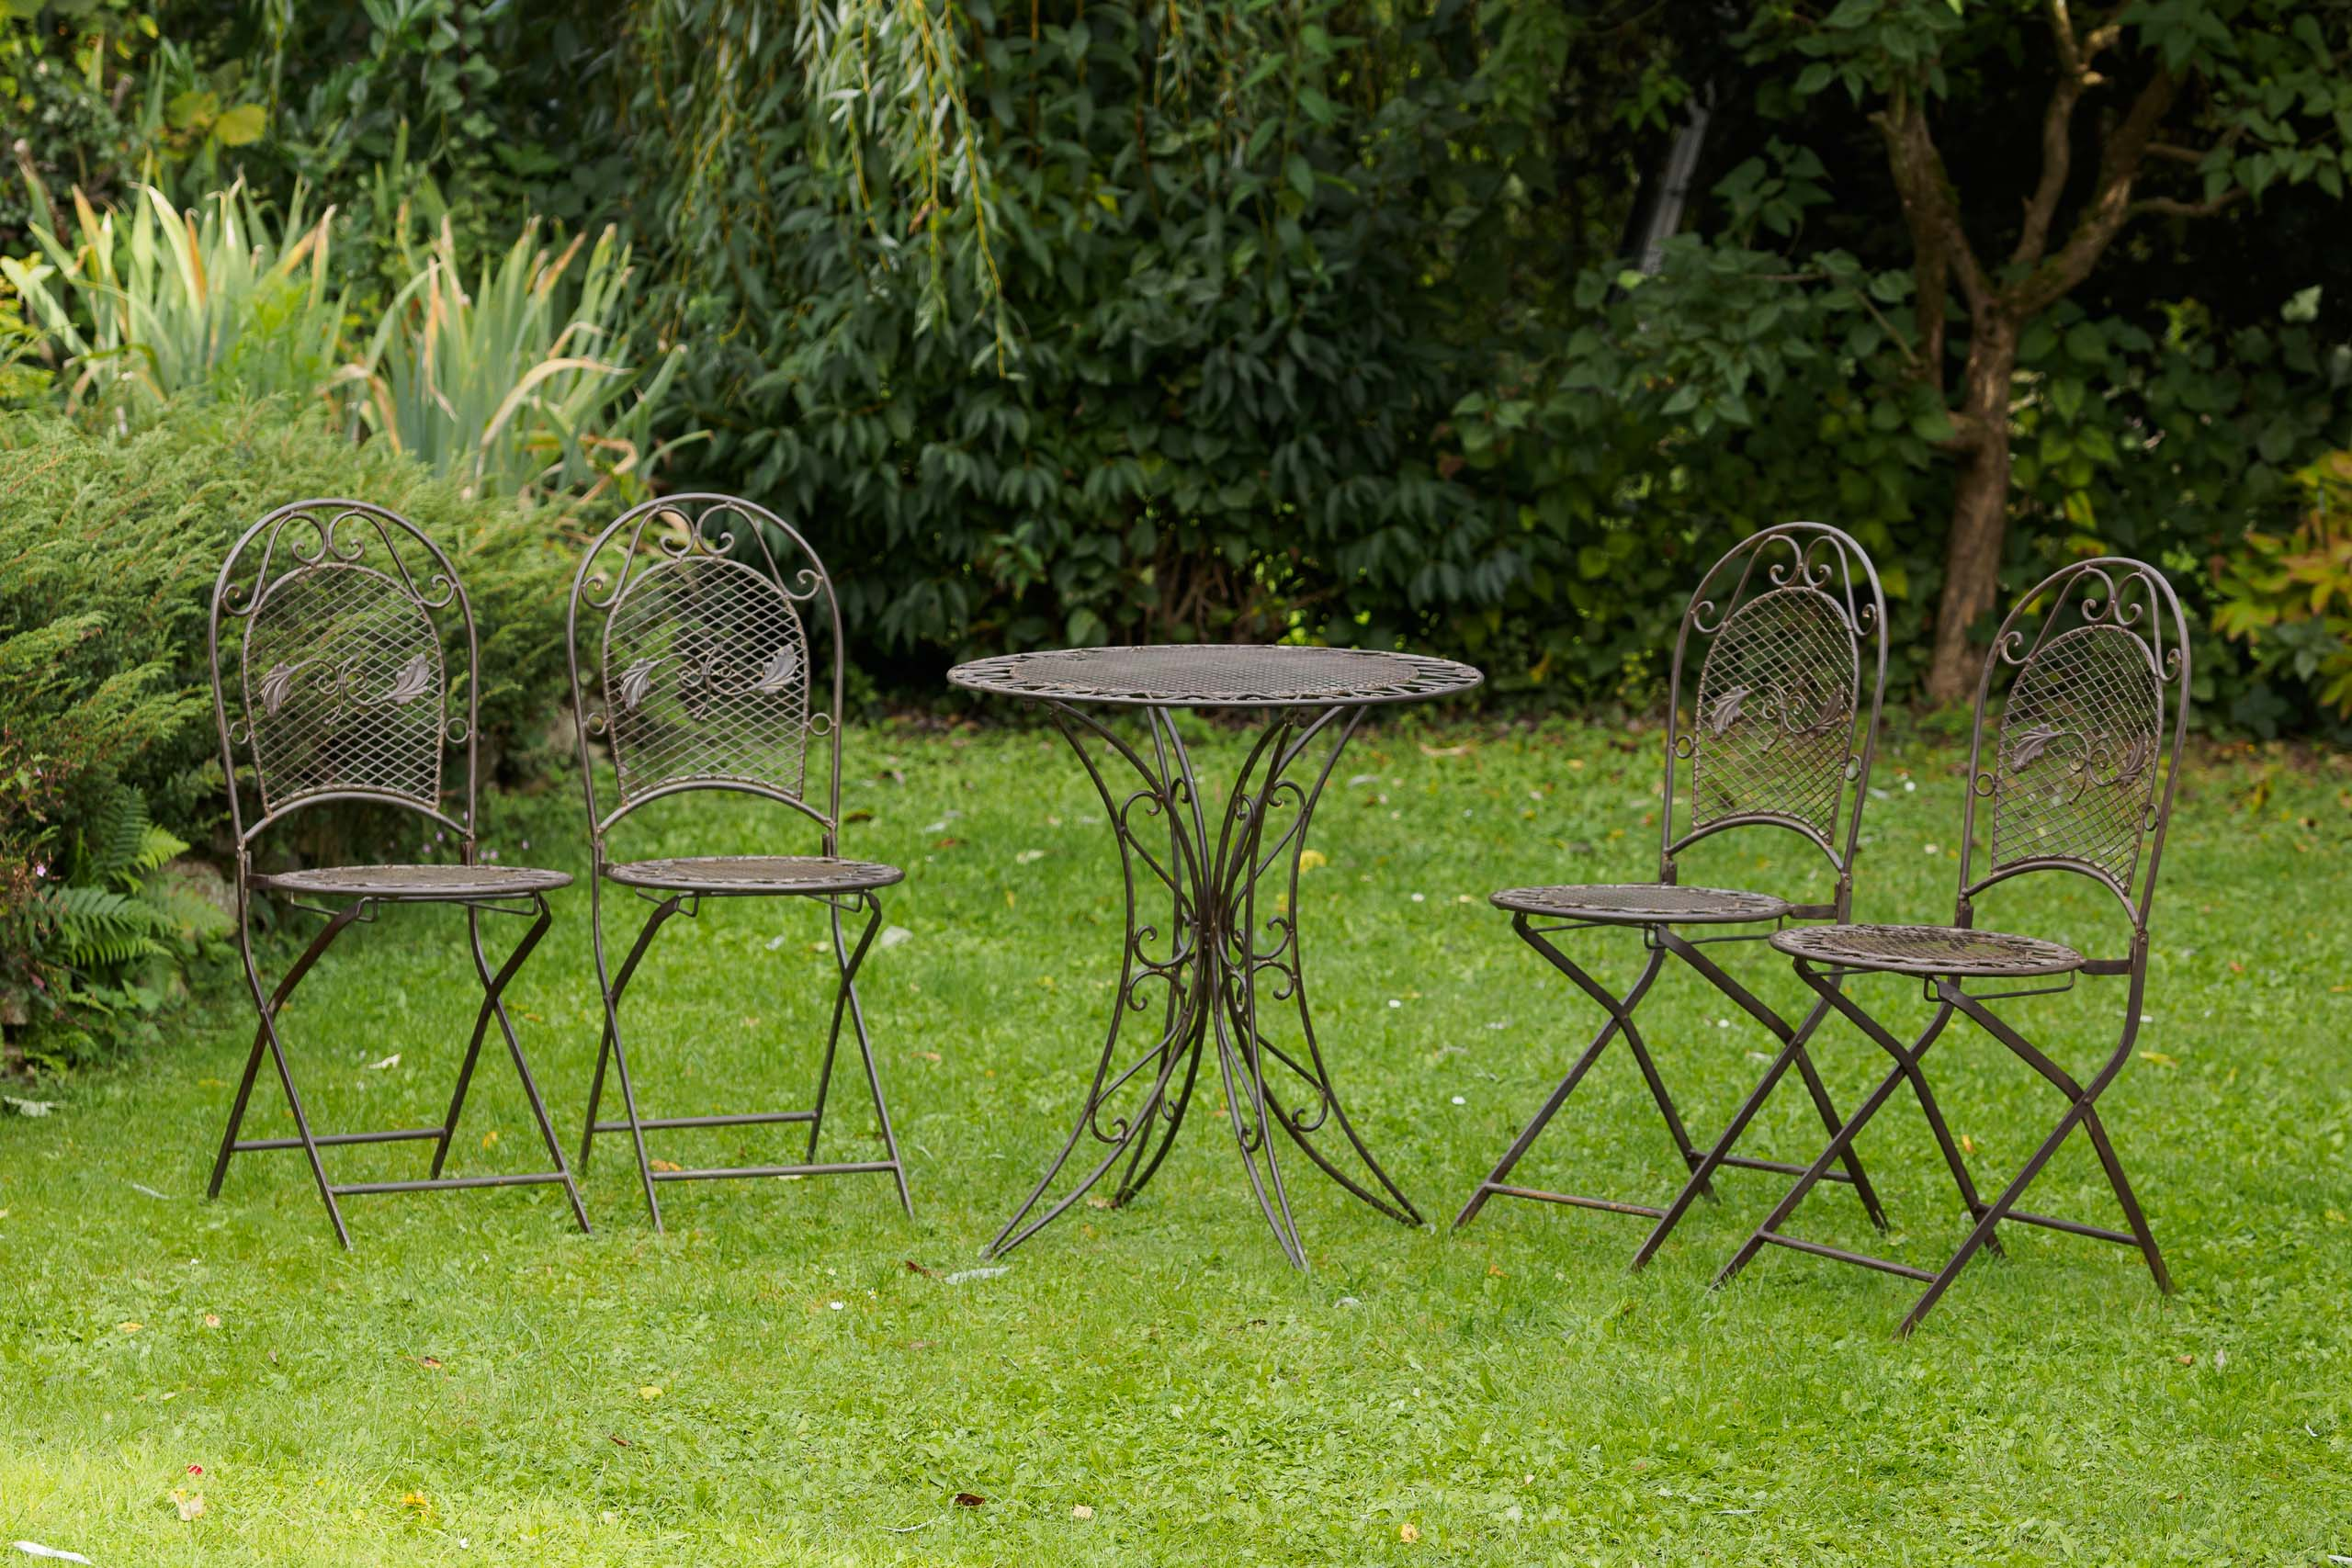 Gartentisch Mit Stühle Kit Garden Table 4 Chairs Iron Schmiedeeisen Garden Furniture Antiquestyle Brown